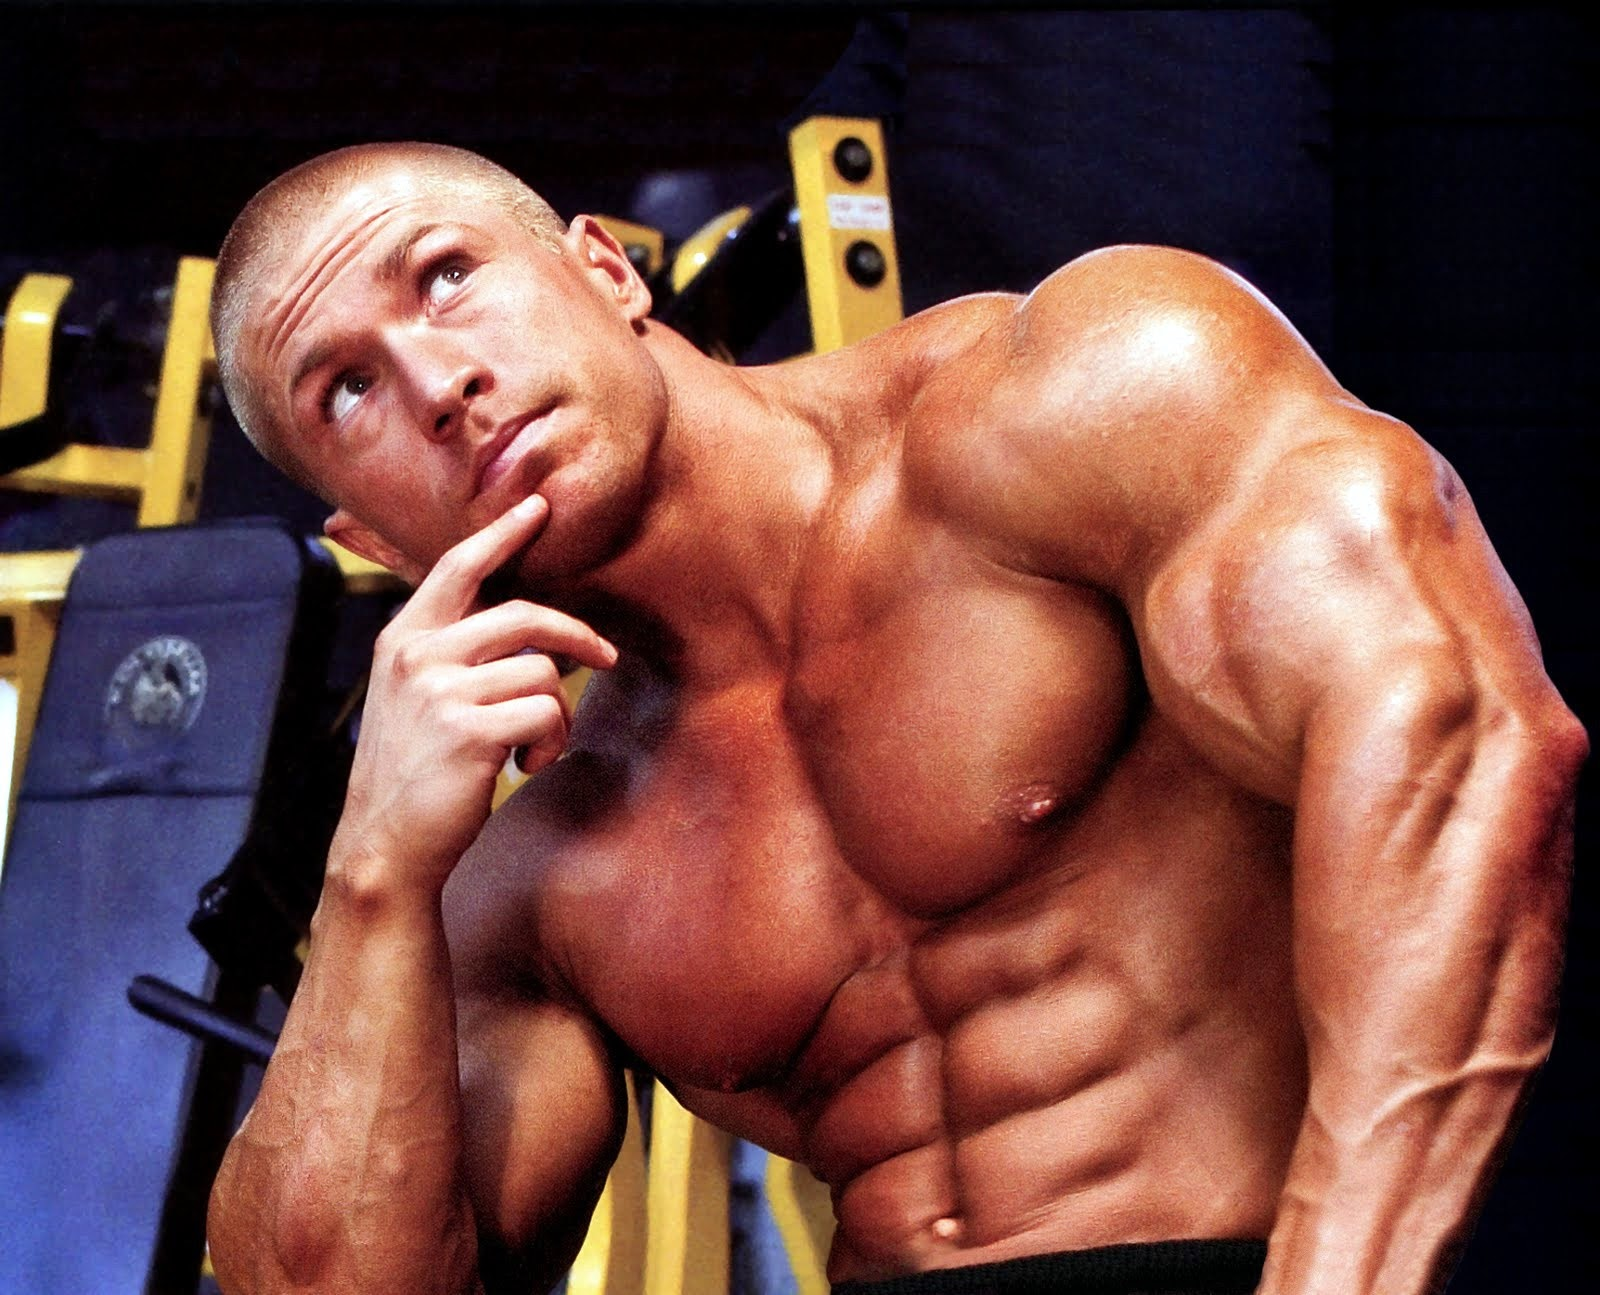 bodybuilding-photo